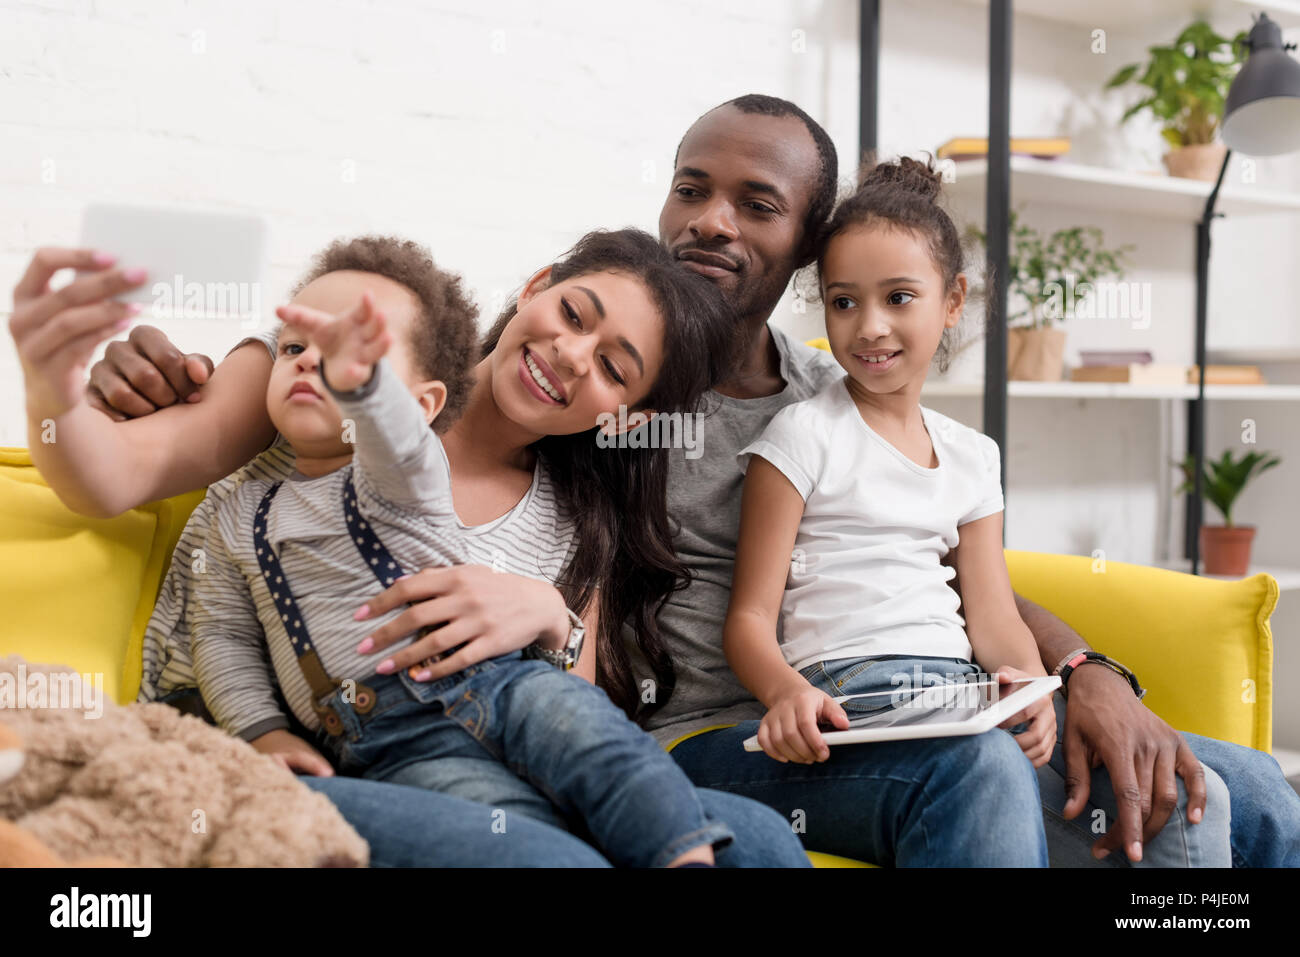 happy young family taking selfie on couch at living room - Stock Image